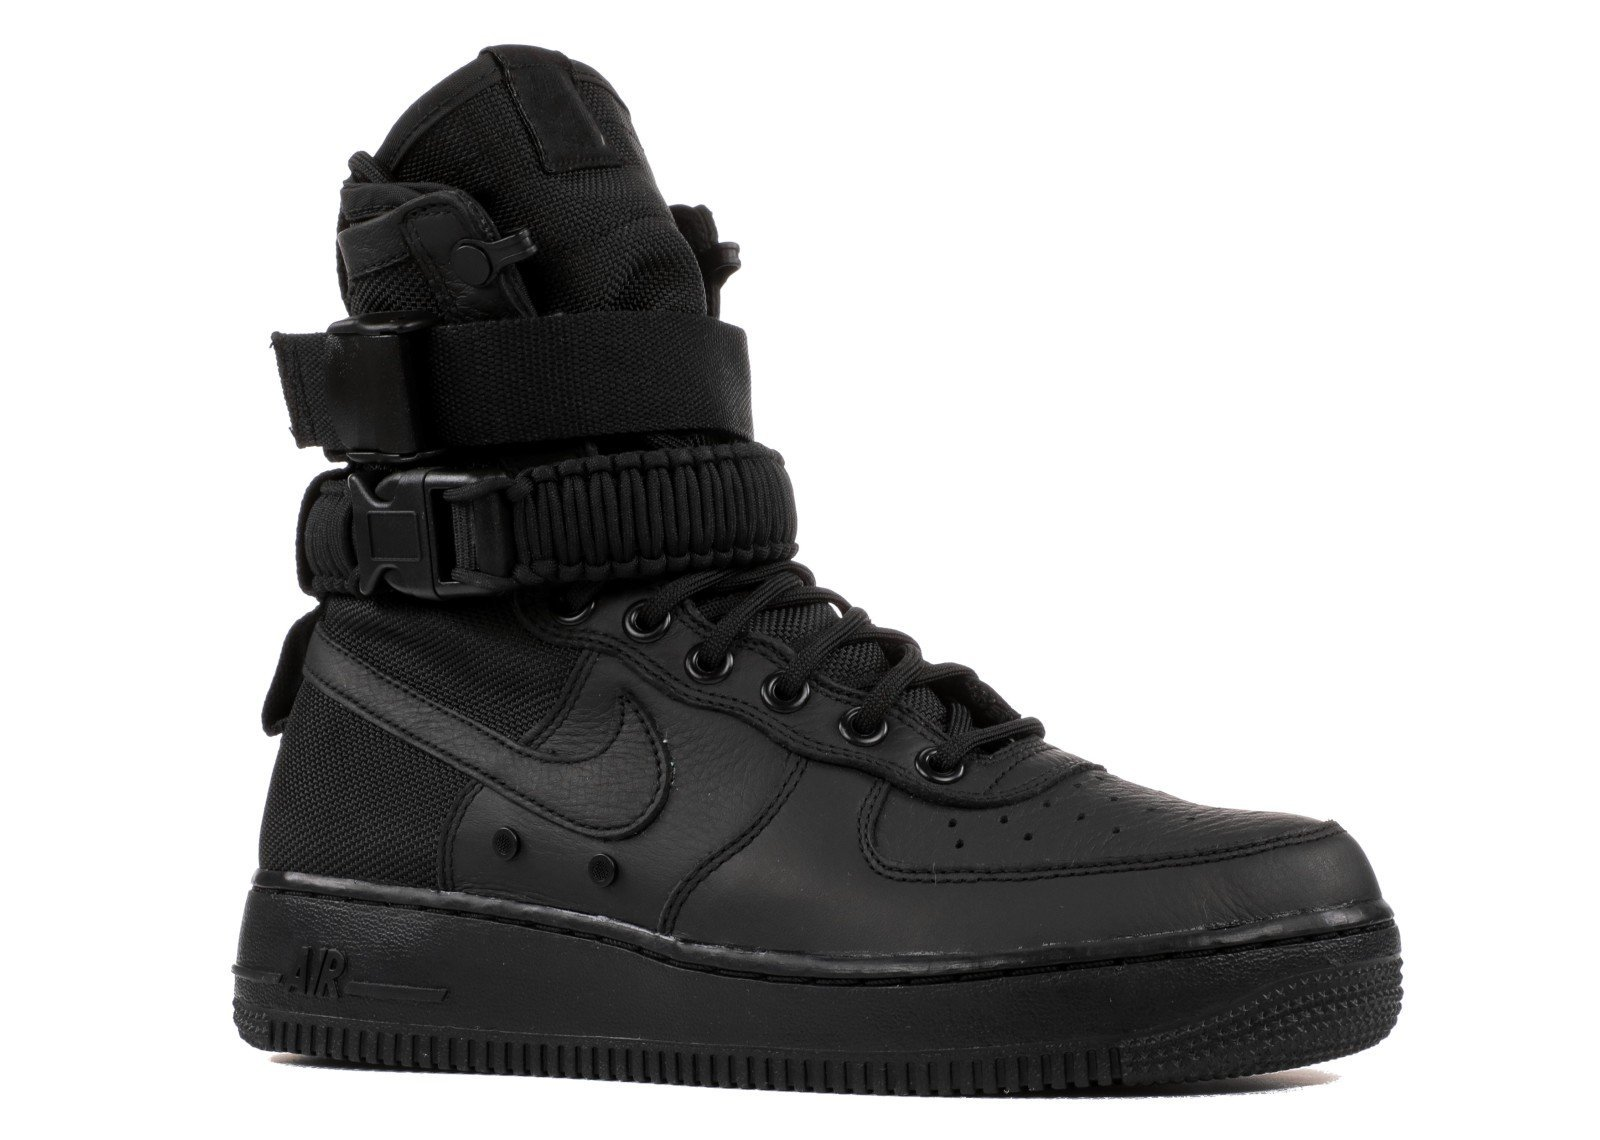 Nike Sf Af1 Womens Style: 857872-002 Size: 10 M US